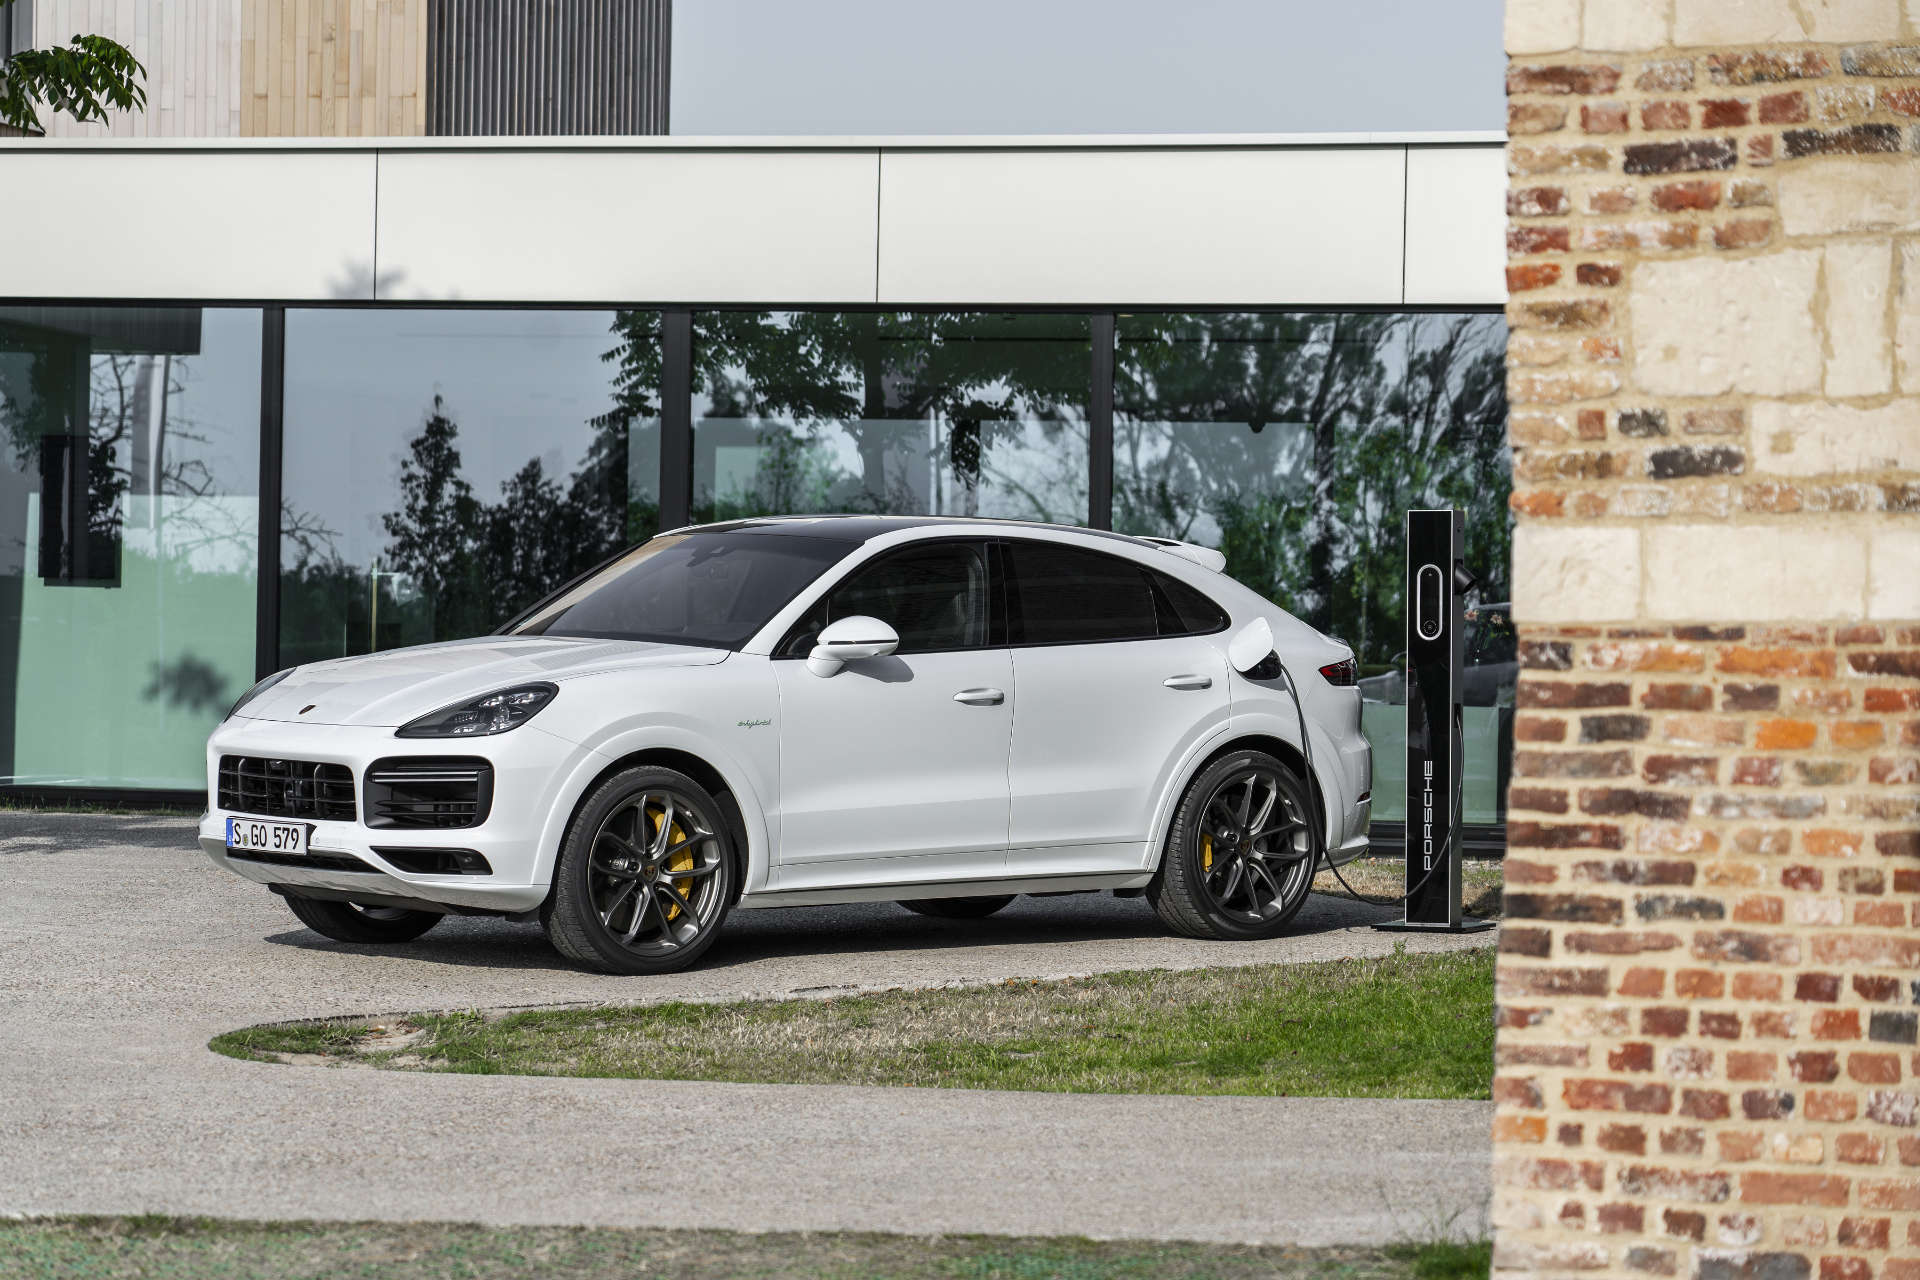 Porsche Cayenne Turbo S E-Hybrid Coupé Ladestation